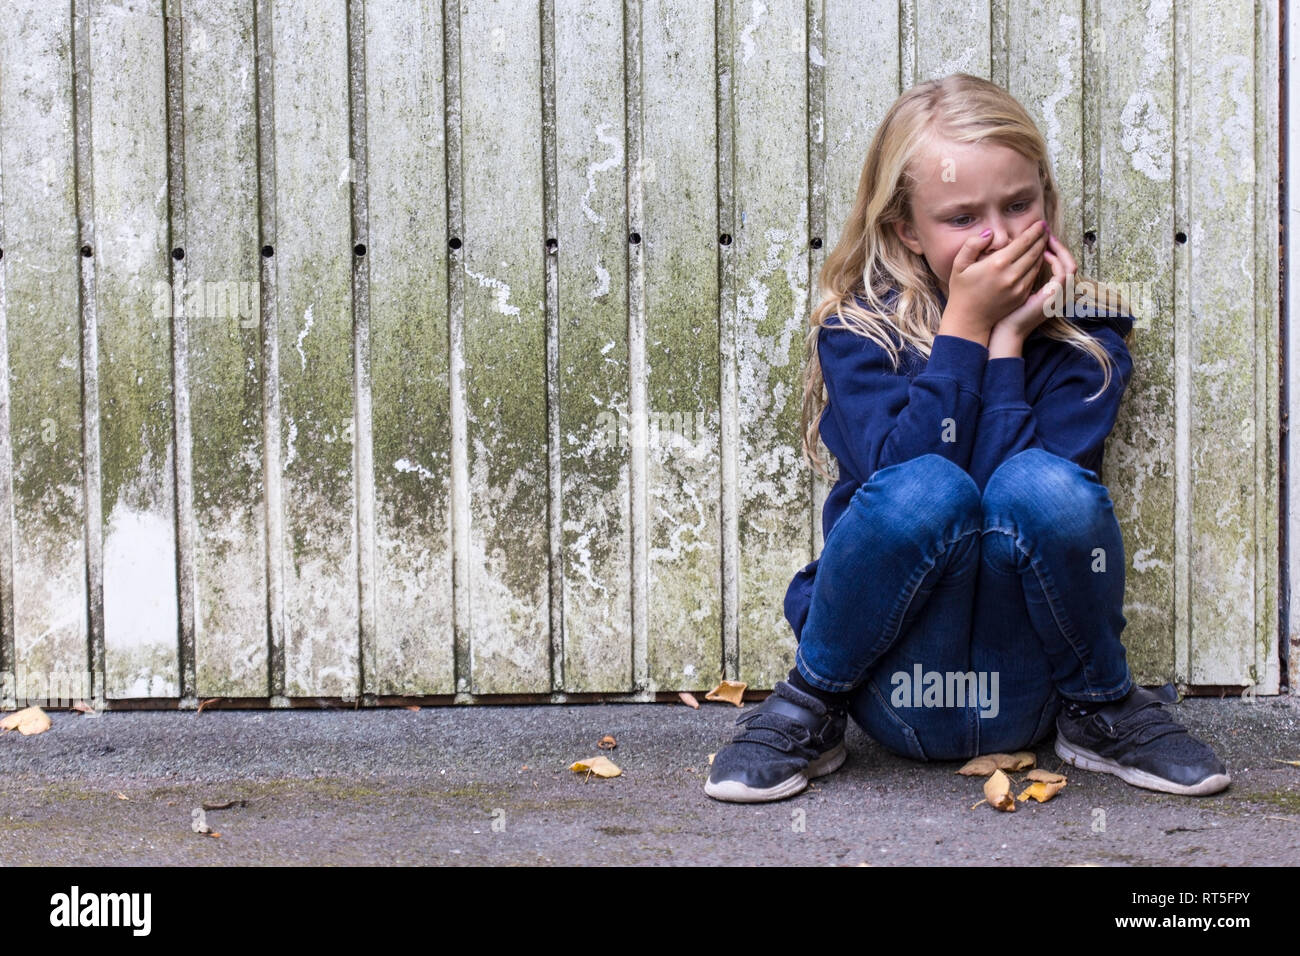 Frightened girl crouching in front of wooden wall - Stock Image